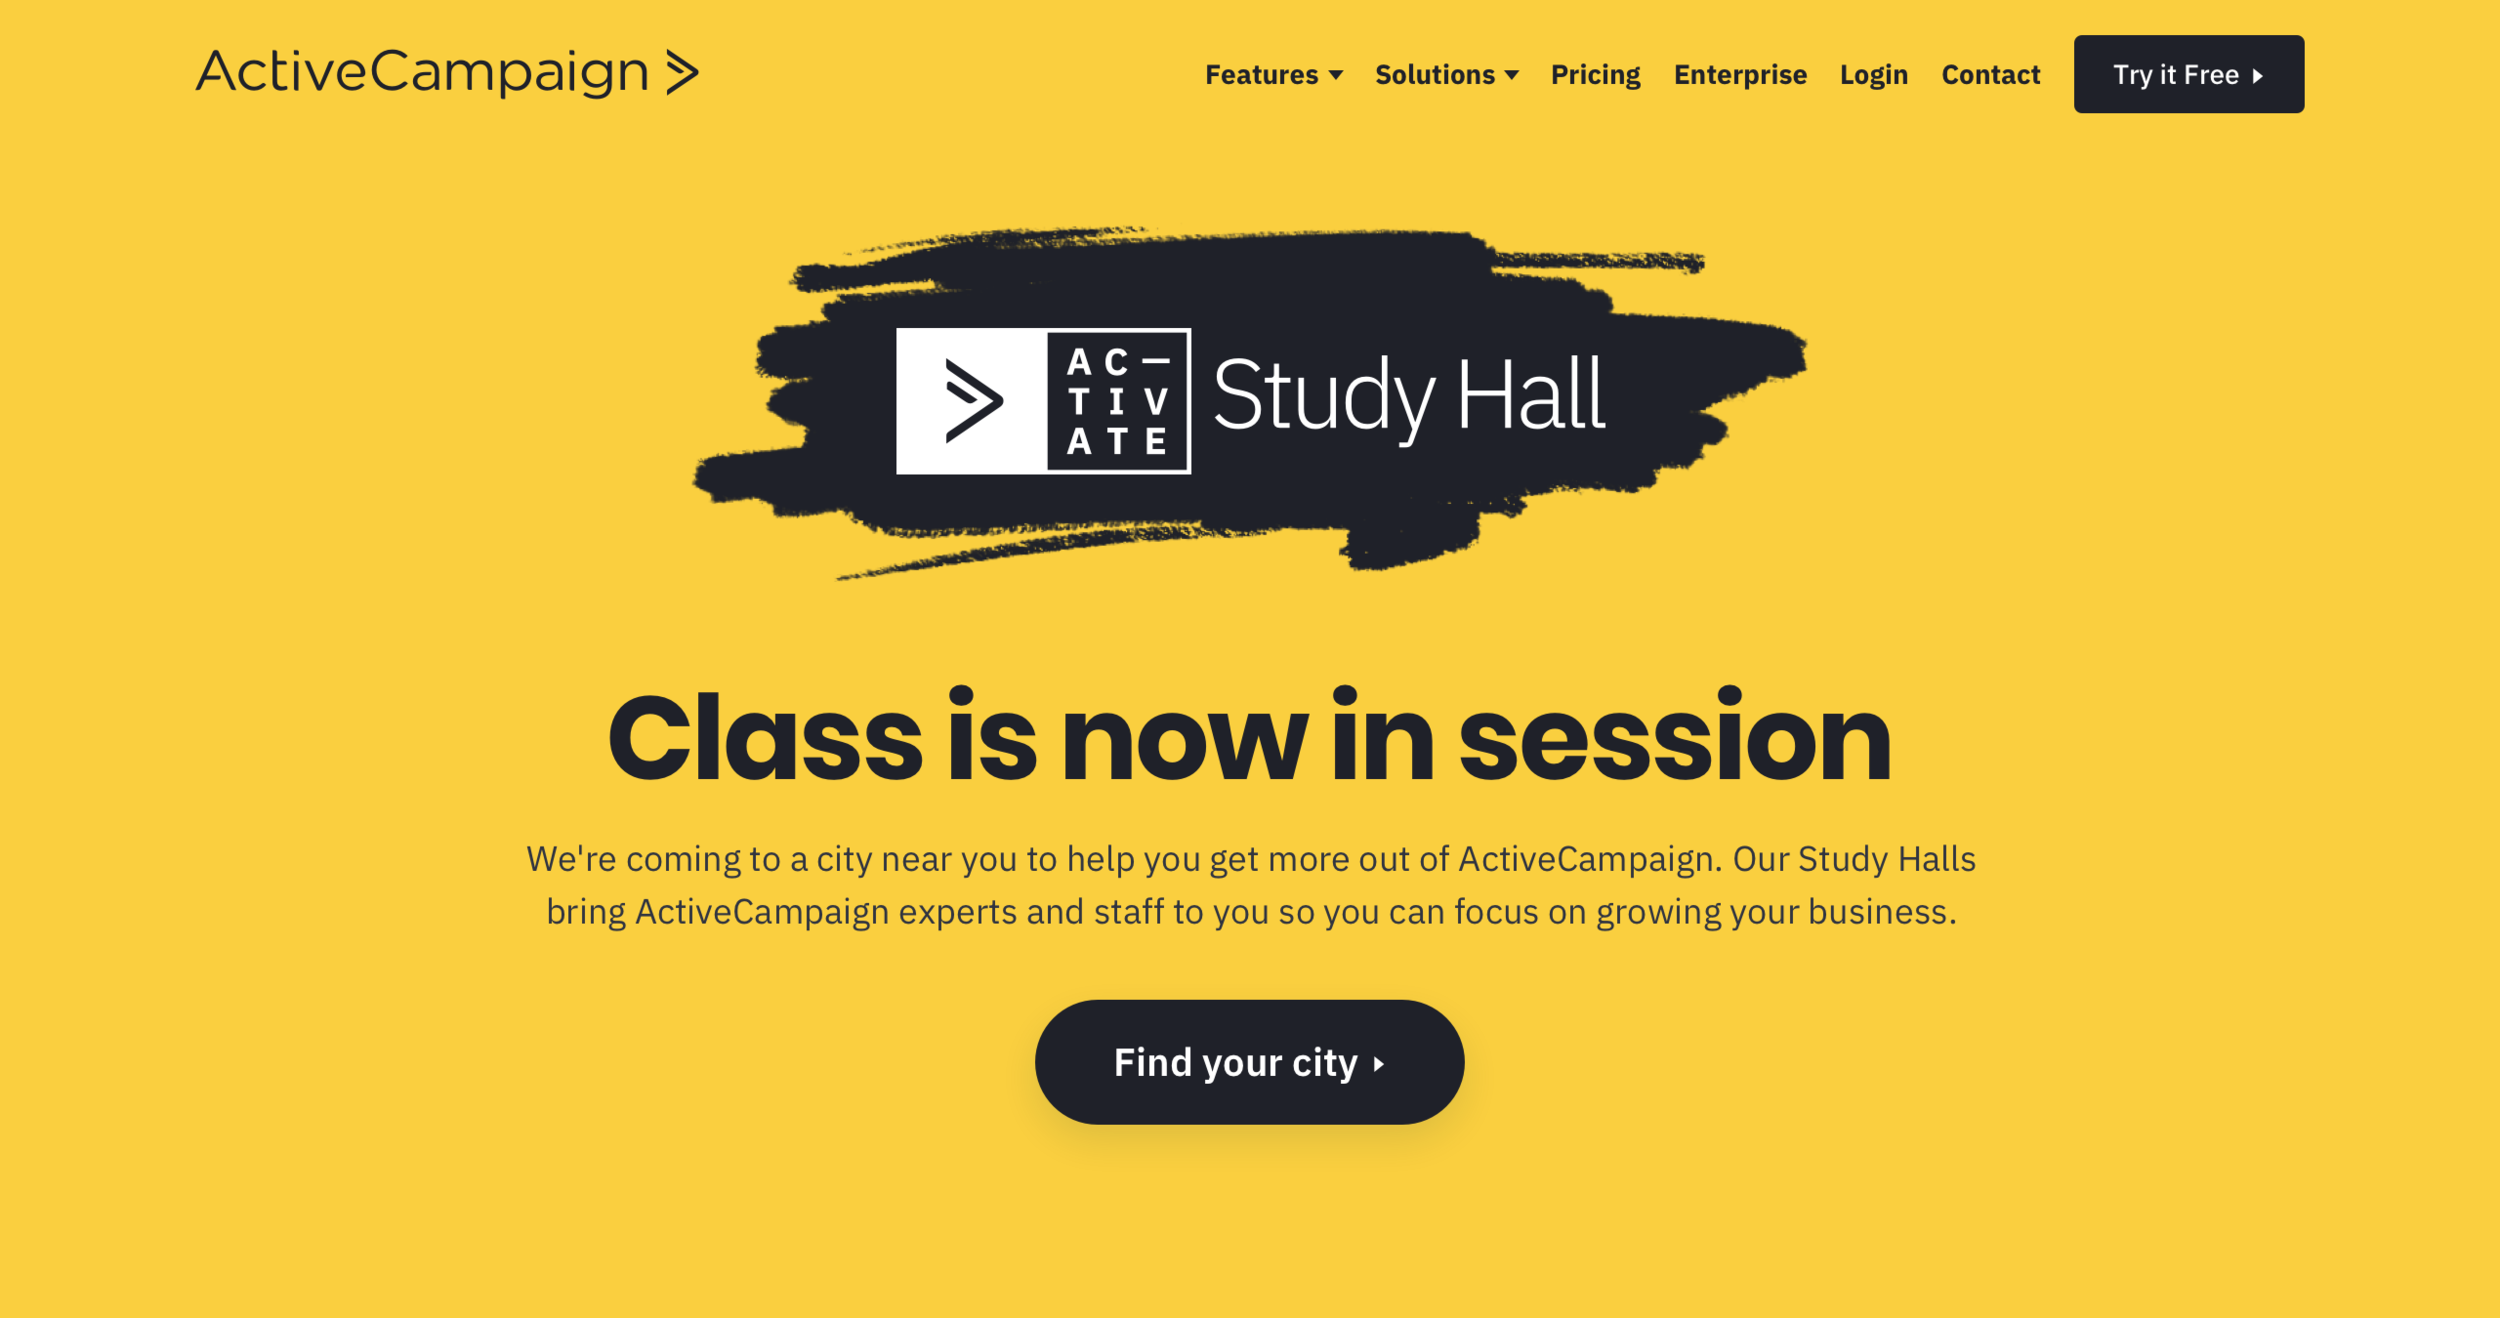 The hero section of the Study Hall landing page